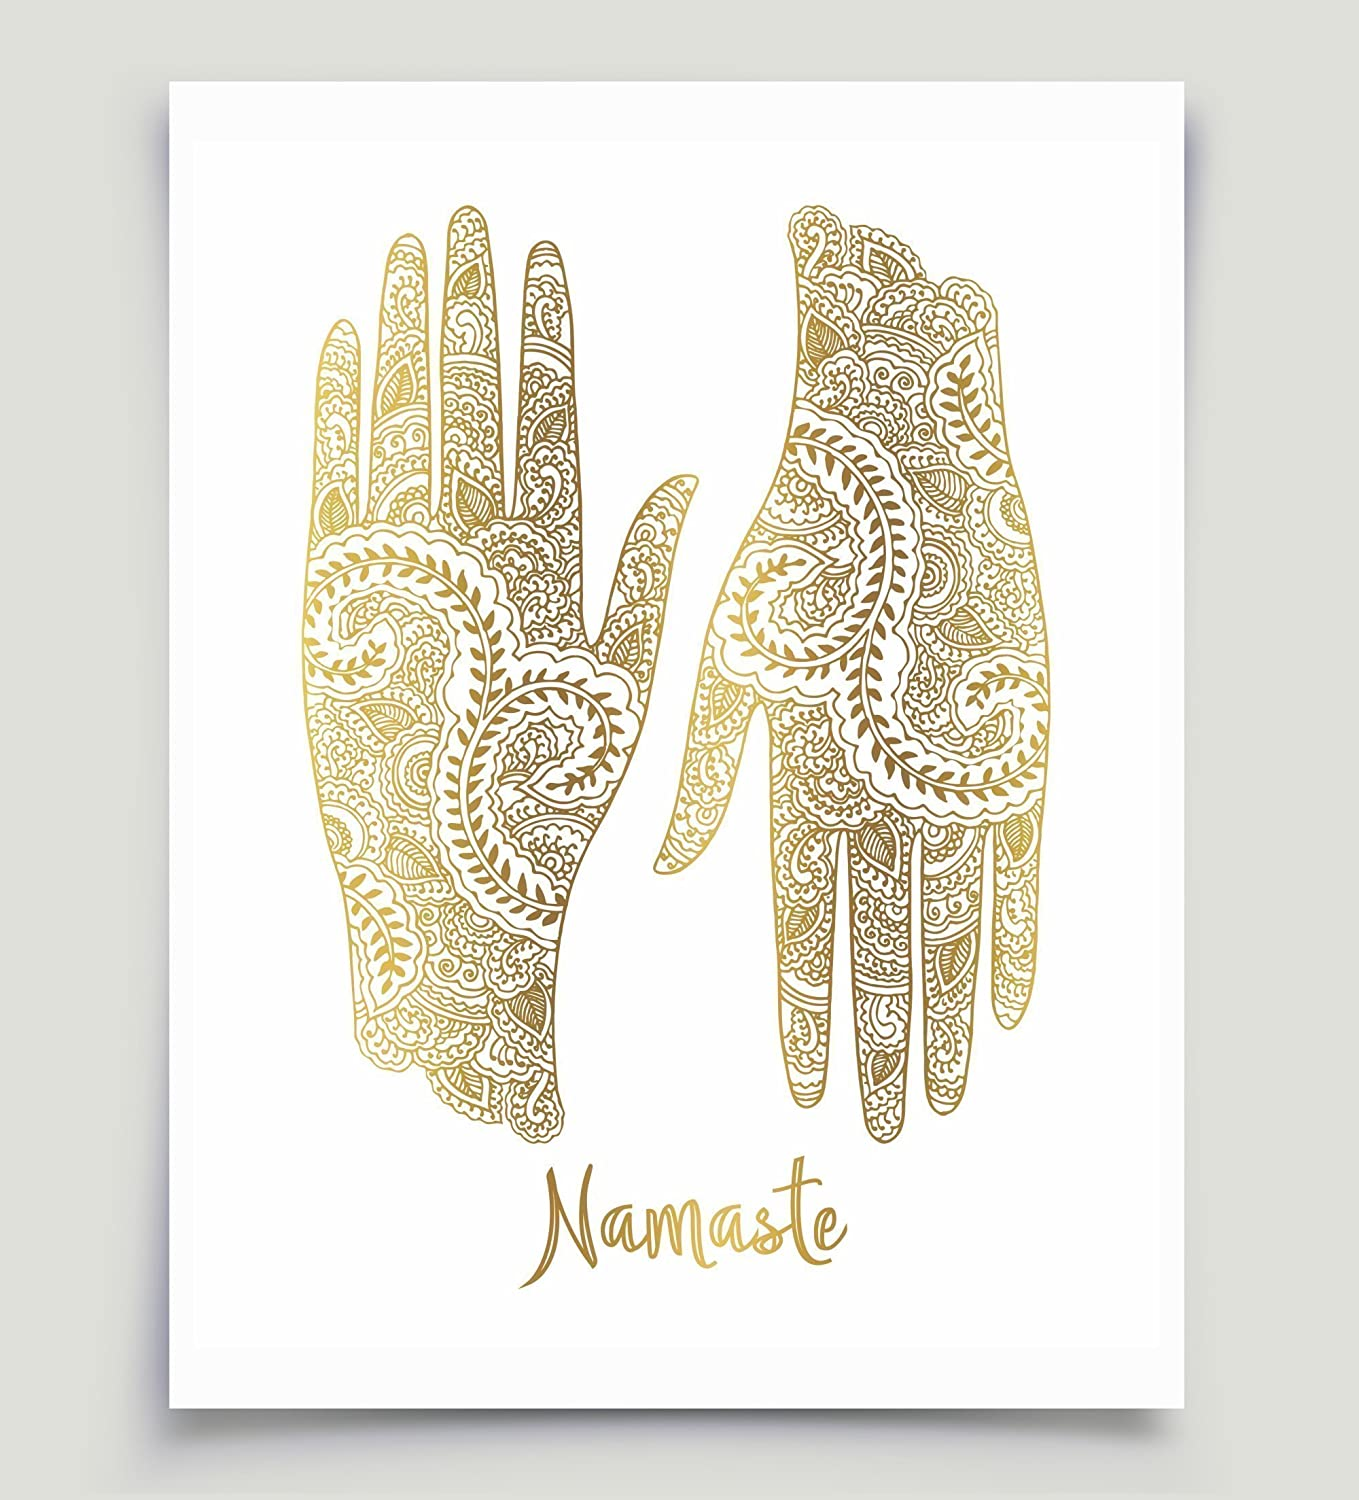 Amazon.com Namaste Mehndi Hands Art Real Gold Foil Unframed